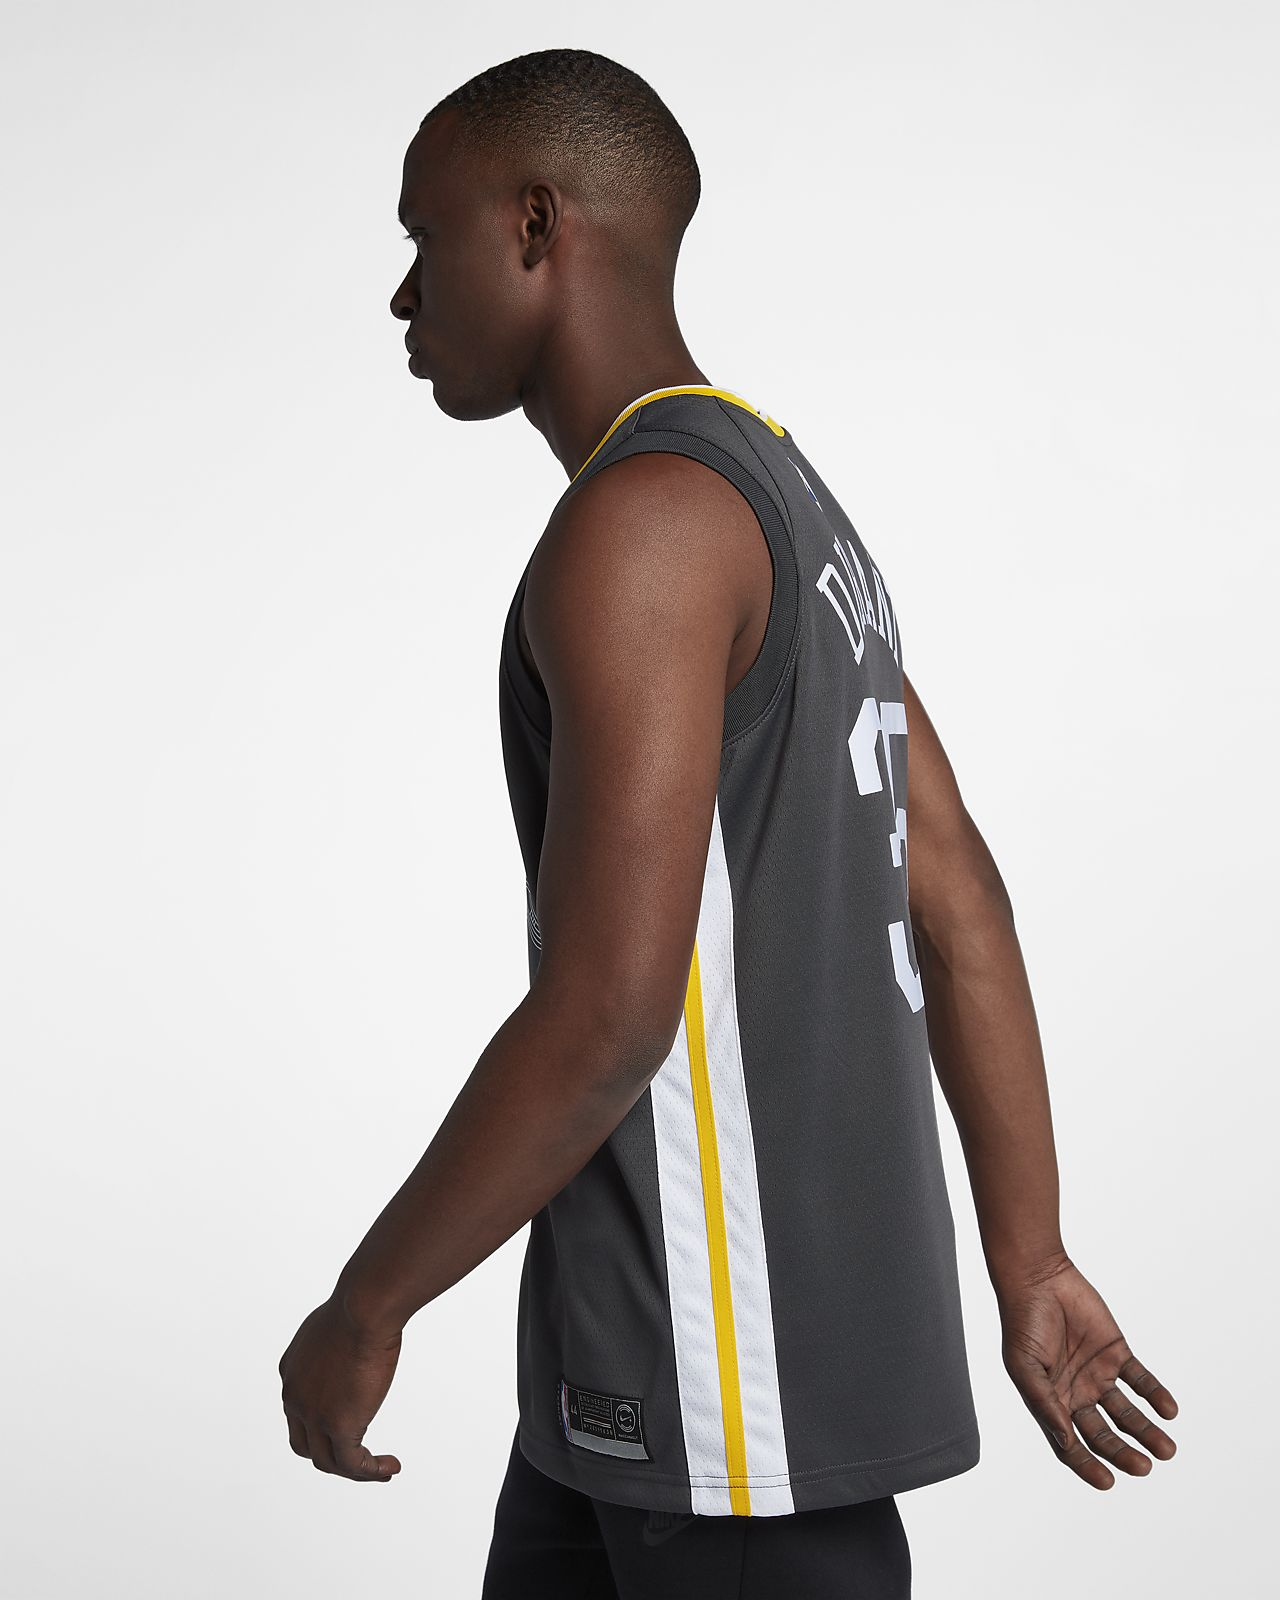 a78fcd443 ... Kevin Durant Statement Edition Swingman (Golden State Warriors) Men s  Nike NBA Connected Jersey